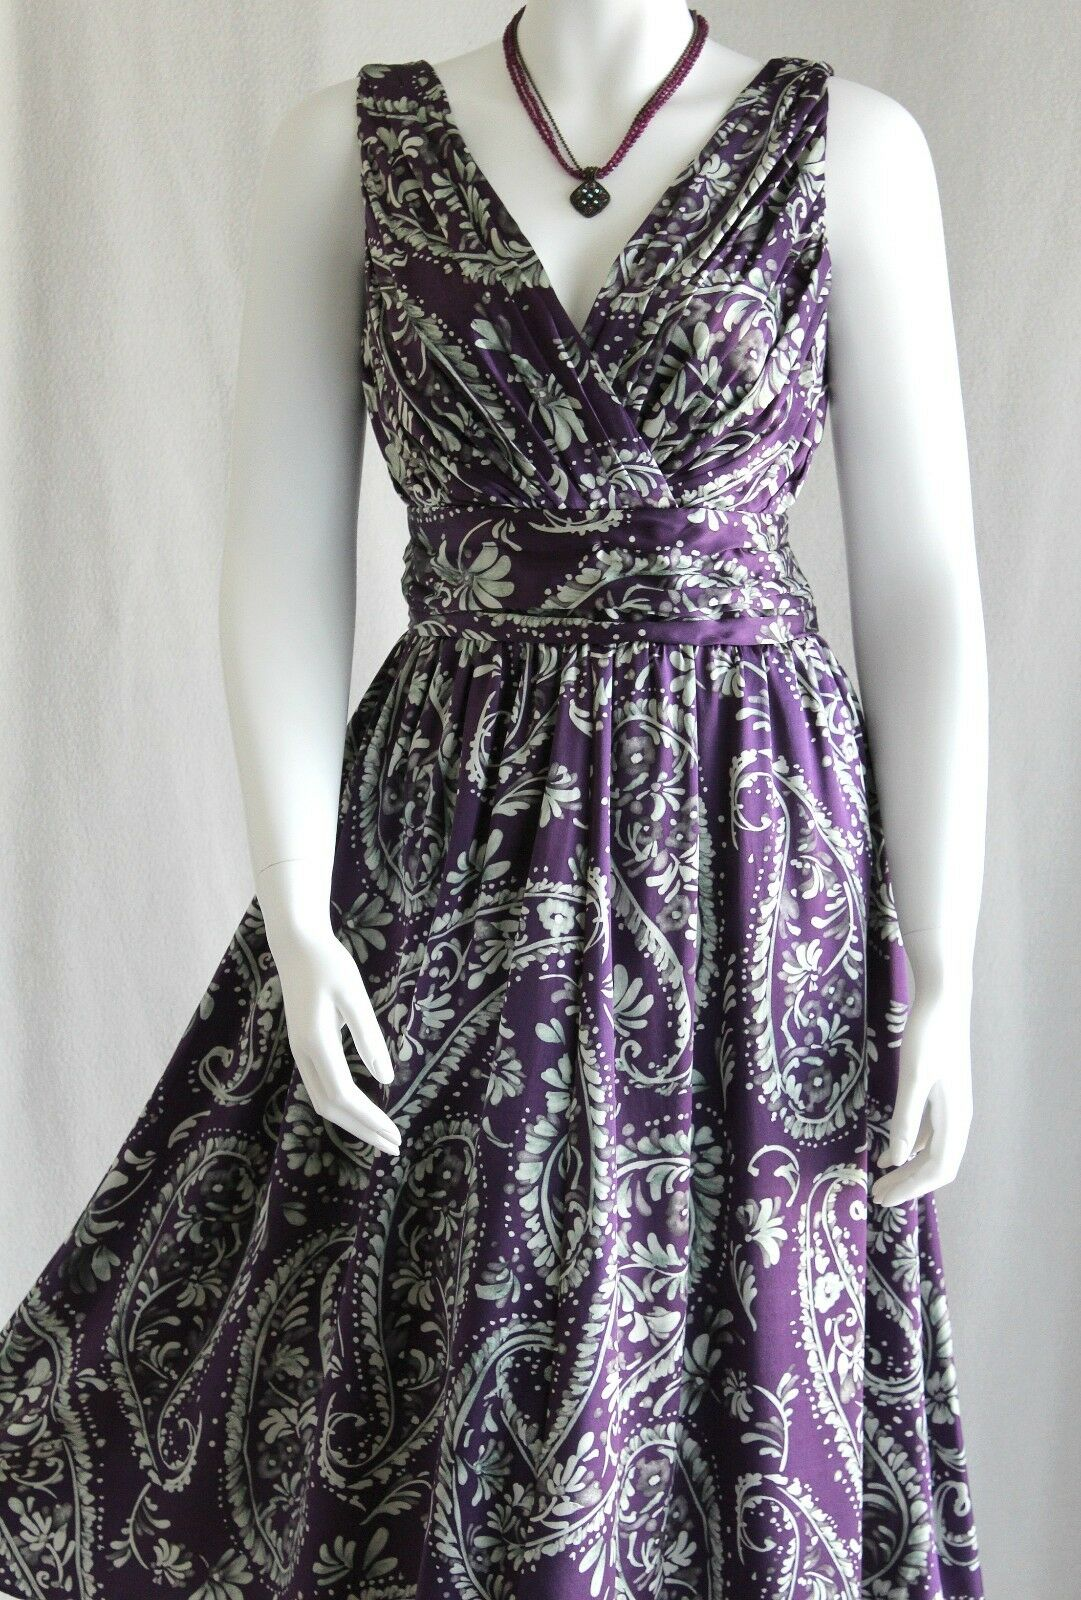 Spiegel Purple Paisley Print 100% SILK Surplice A-Line Midi Dress 6 NWT